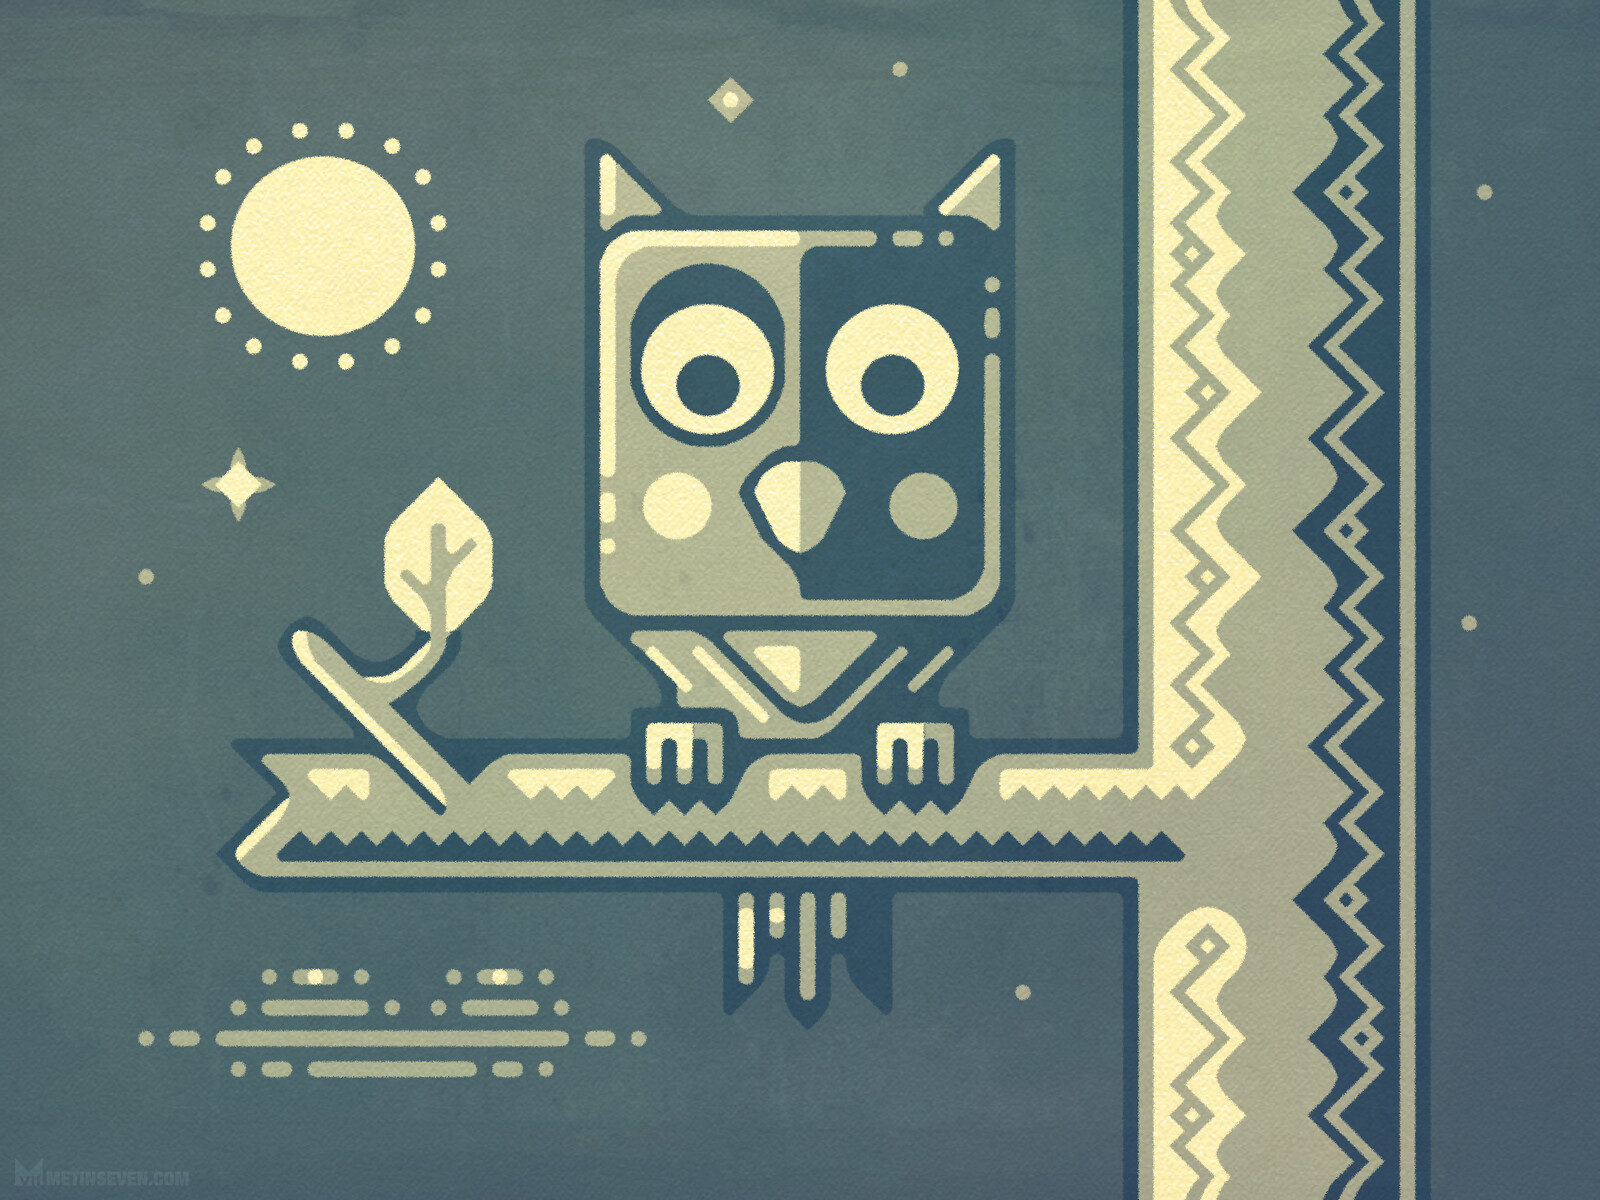 Night owl character design in a fairylike style